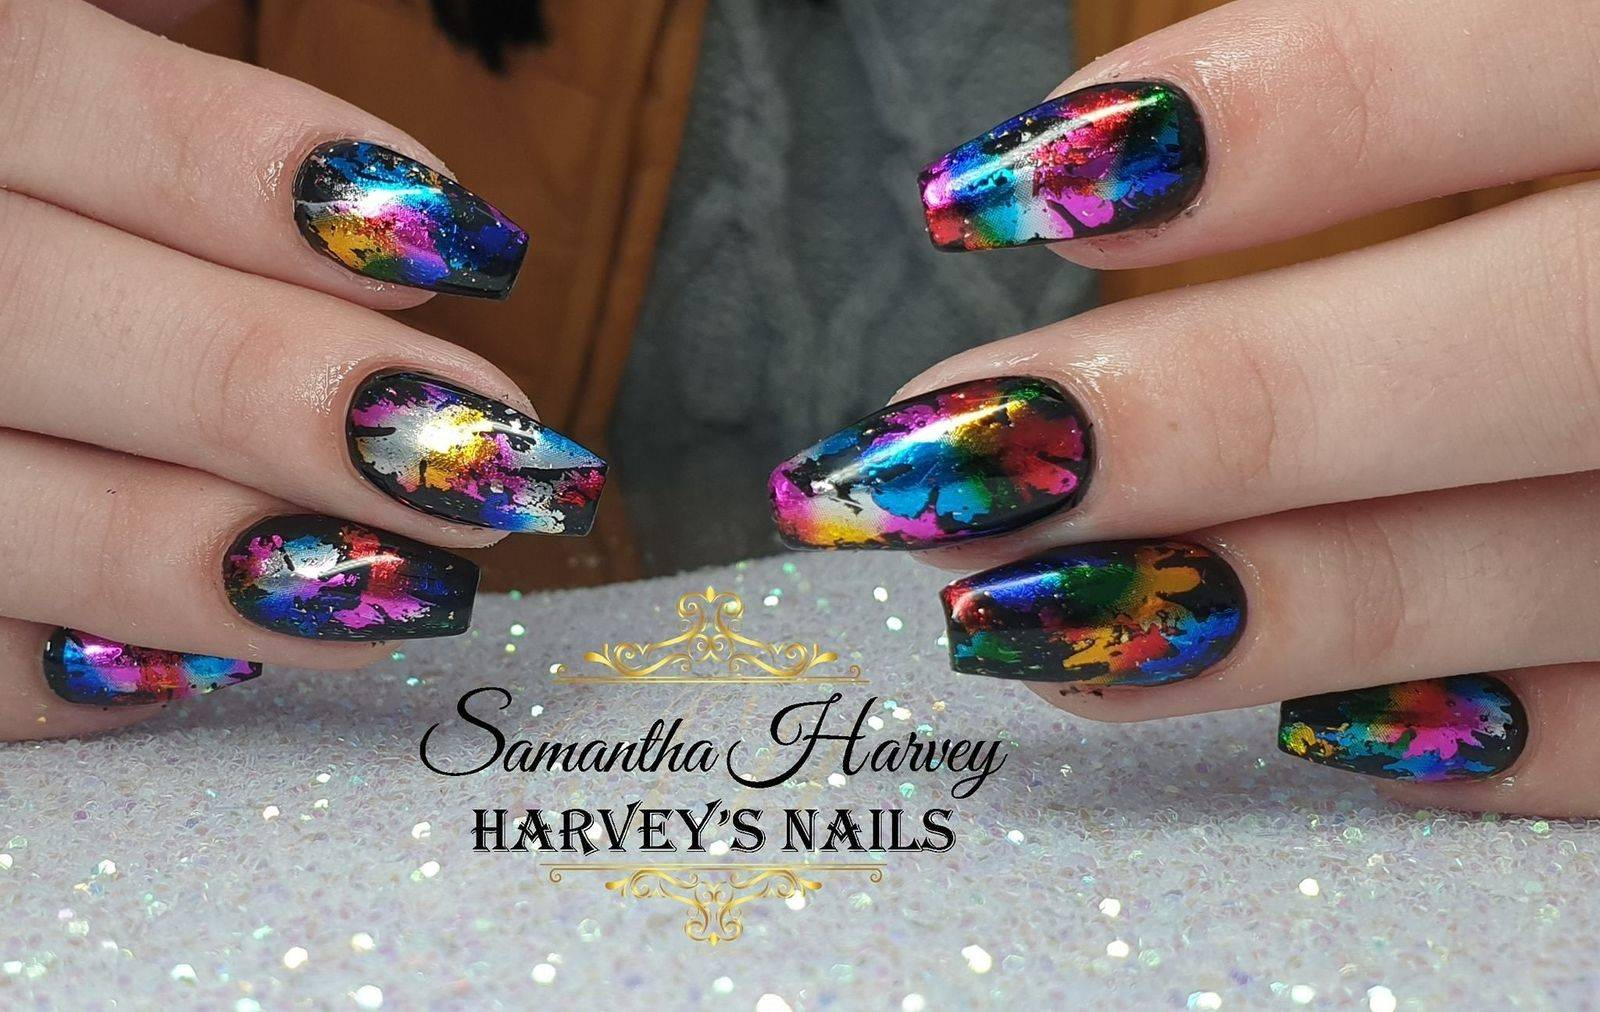 Acrylic extensions, finished with Gel polish and foil design